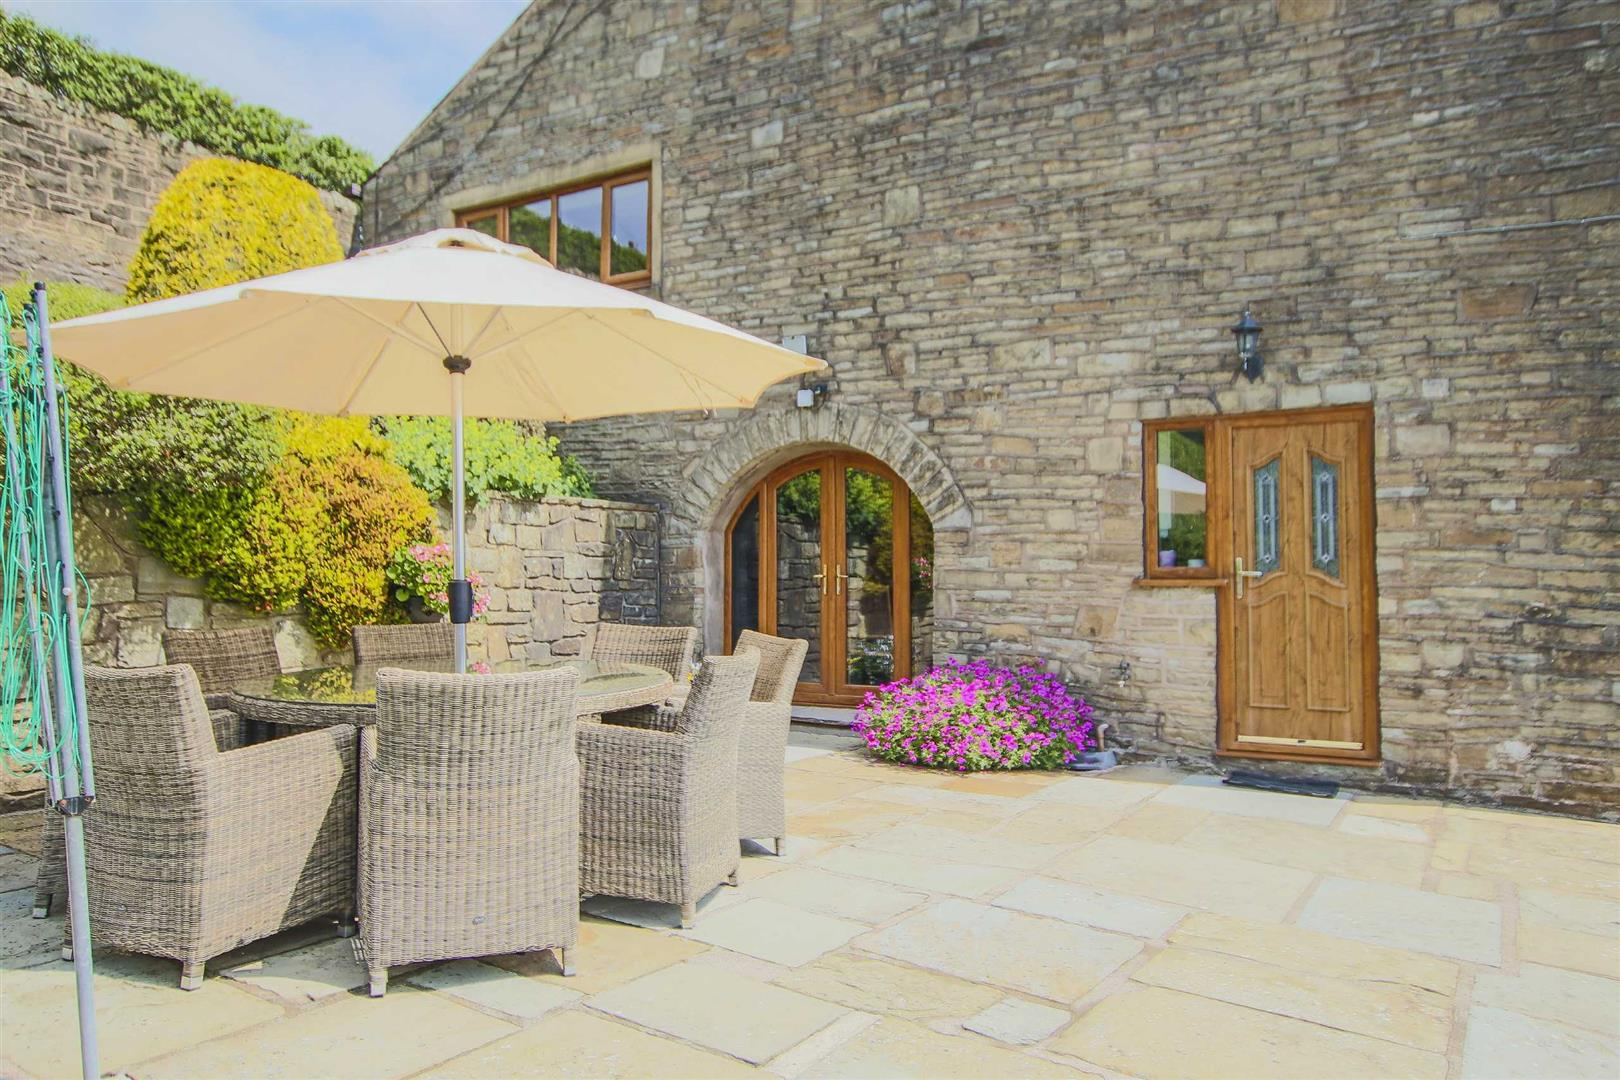 4 Bedroom Barn Conversion For Sale - p033135_23.jpg